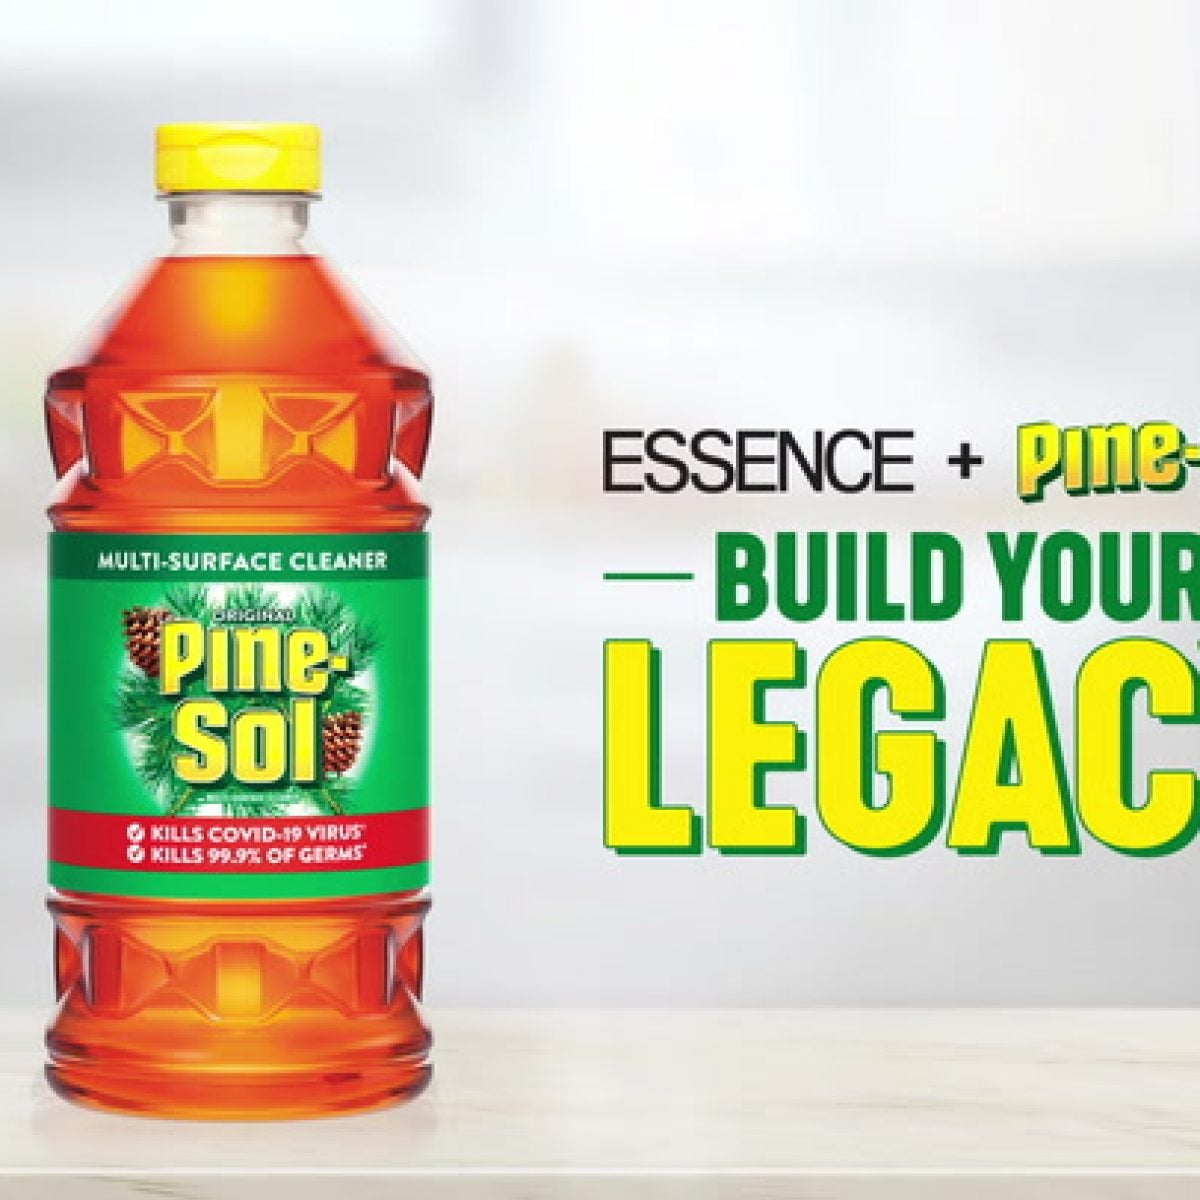 Essence x Pine-Sol Build Your Legacy Contest is Back!